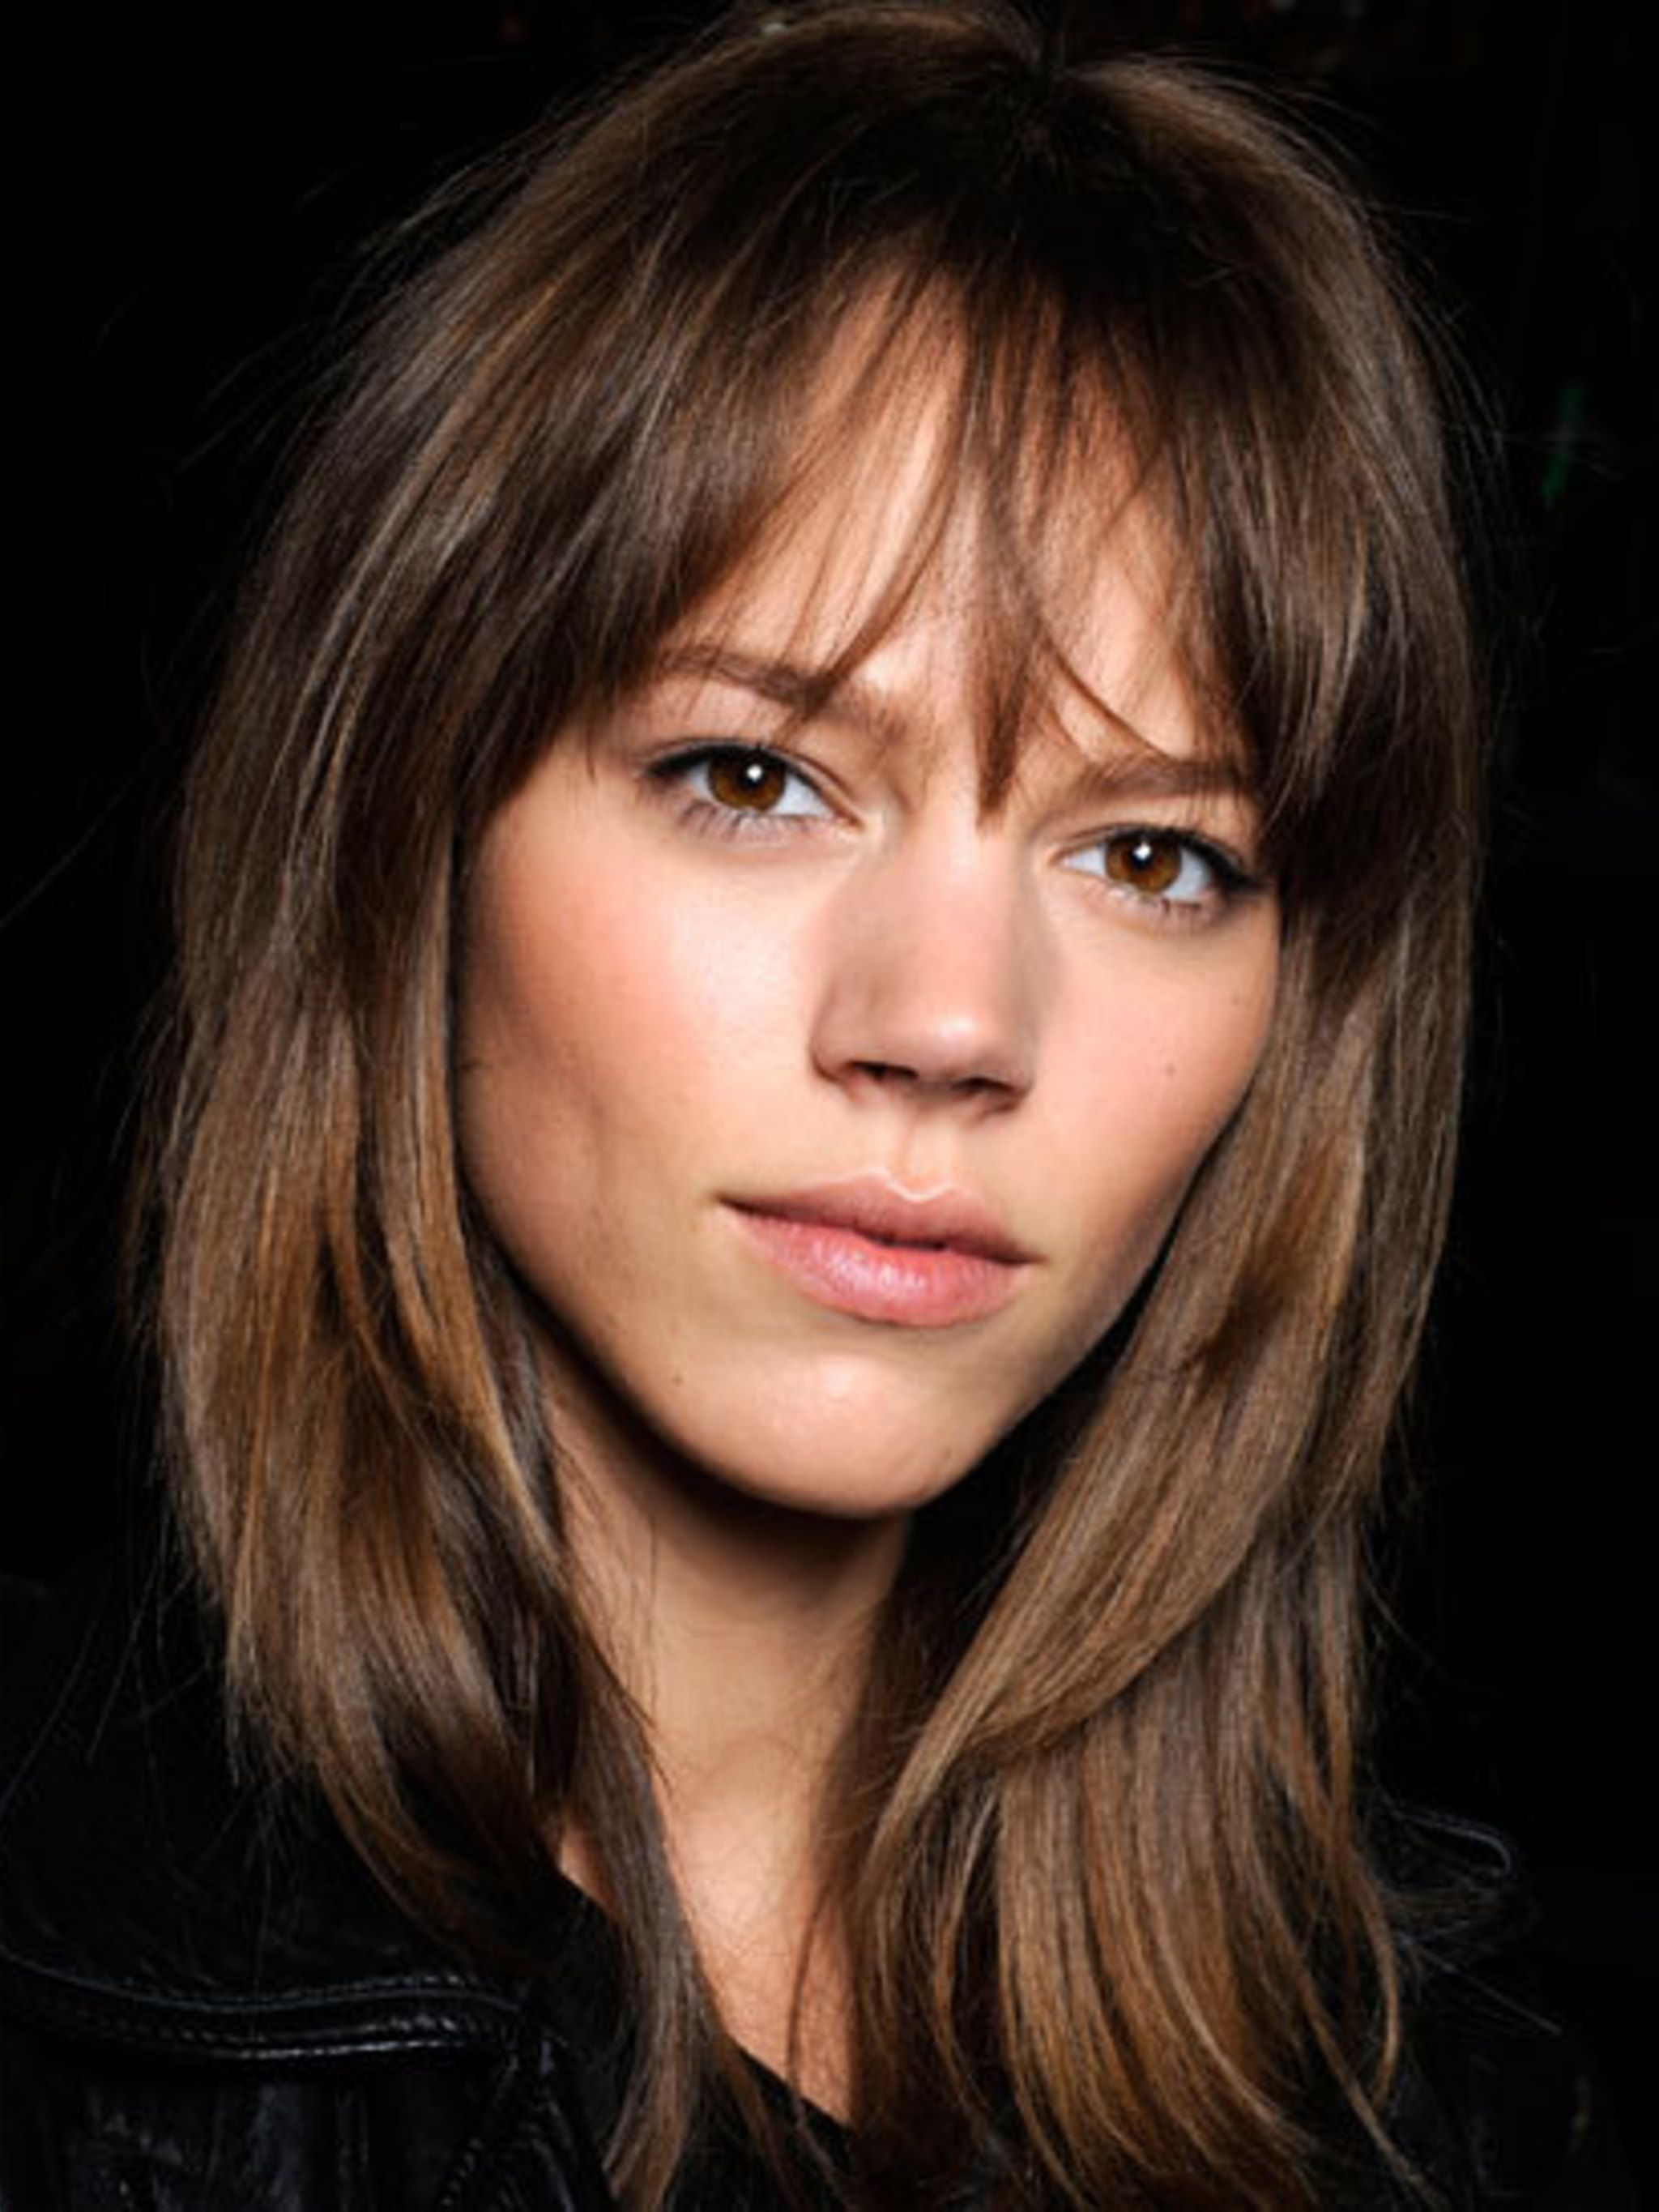 Fotos Freja Beha Erichsen nude photos 2019